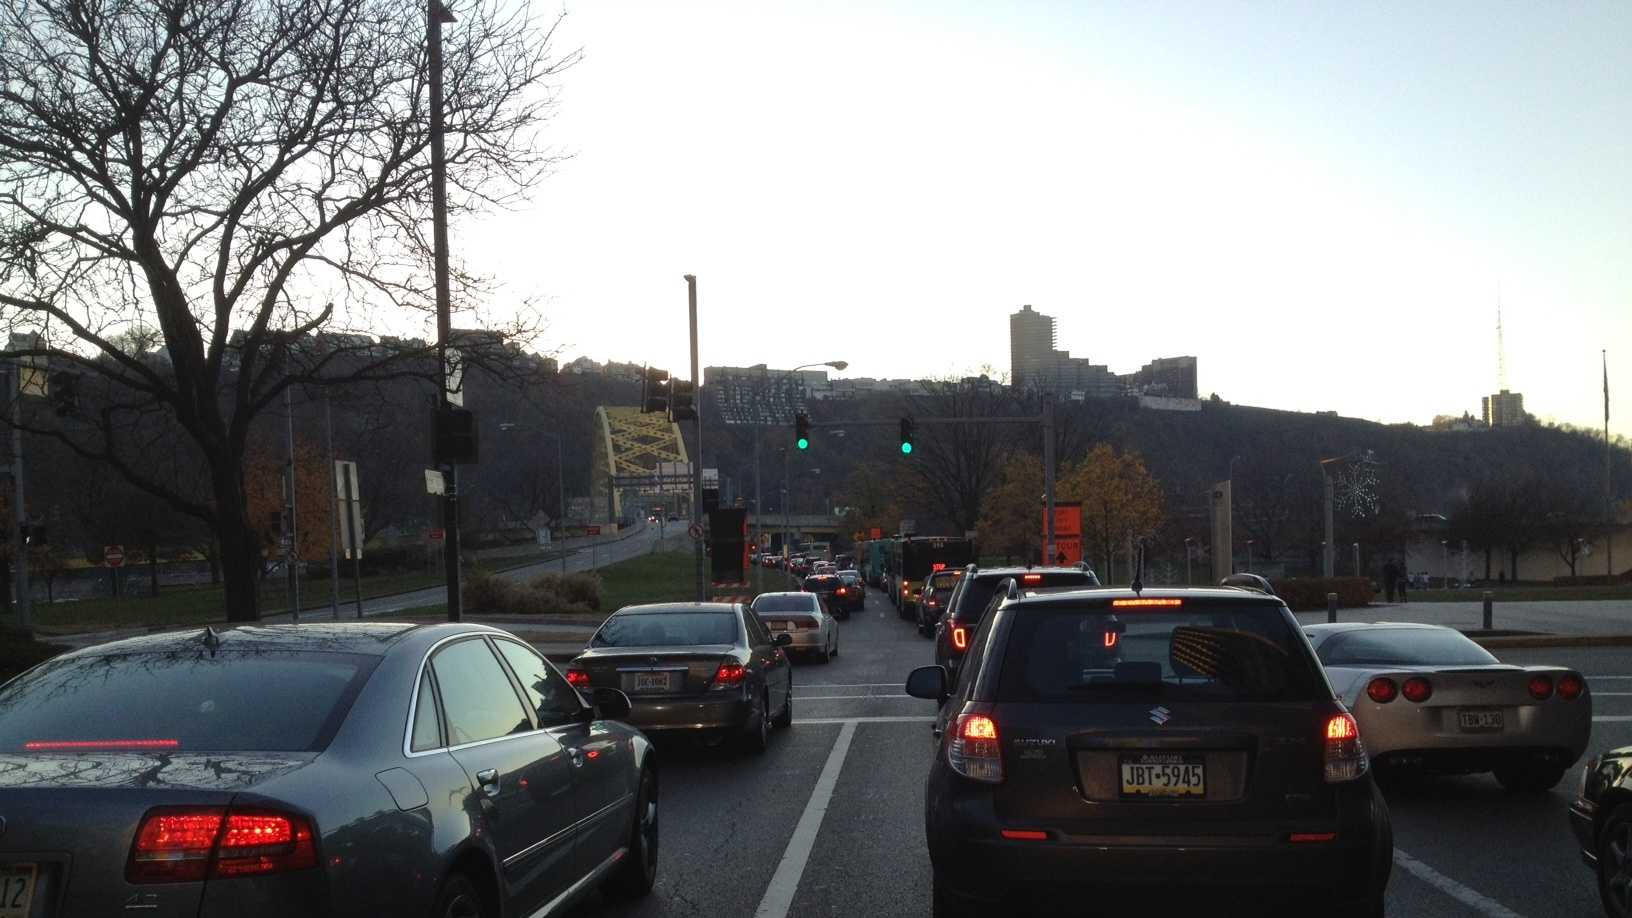 Downtown Pittsburgh traffic